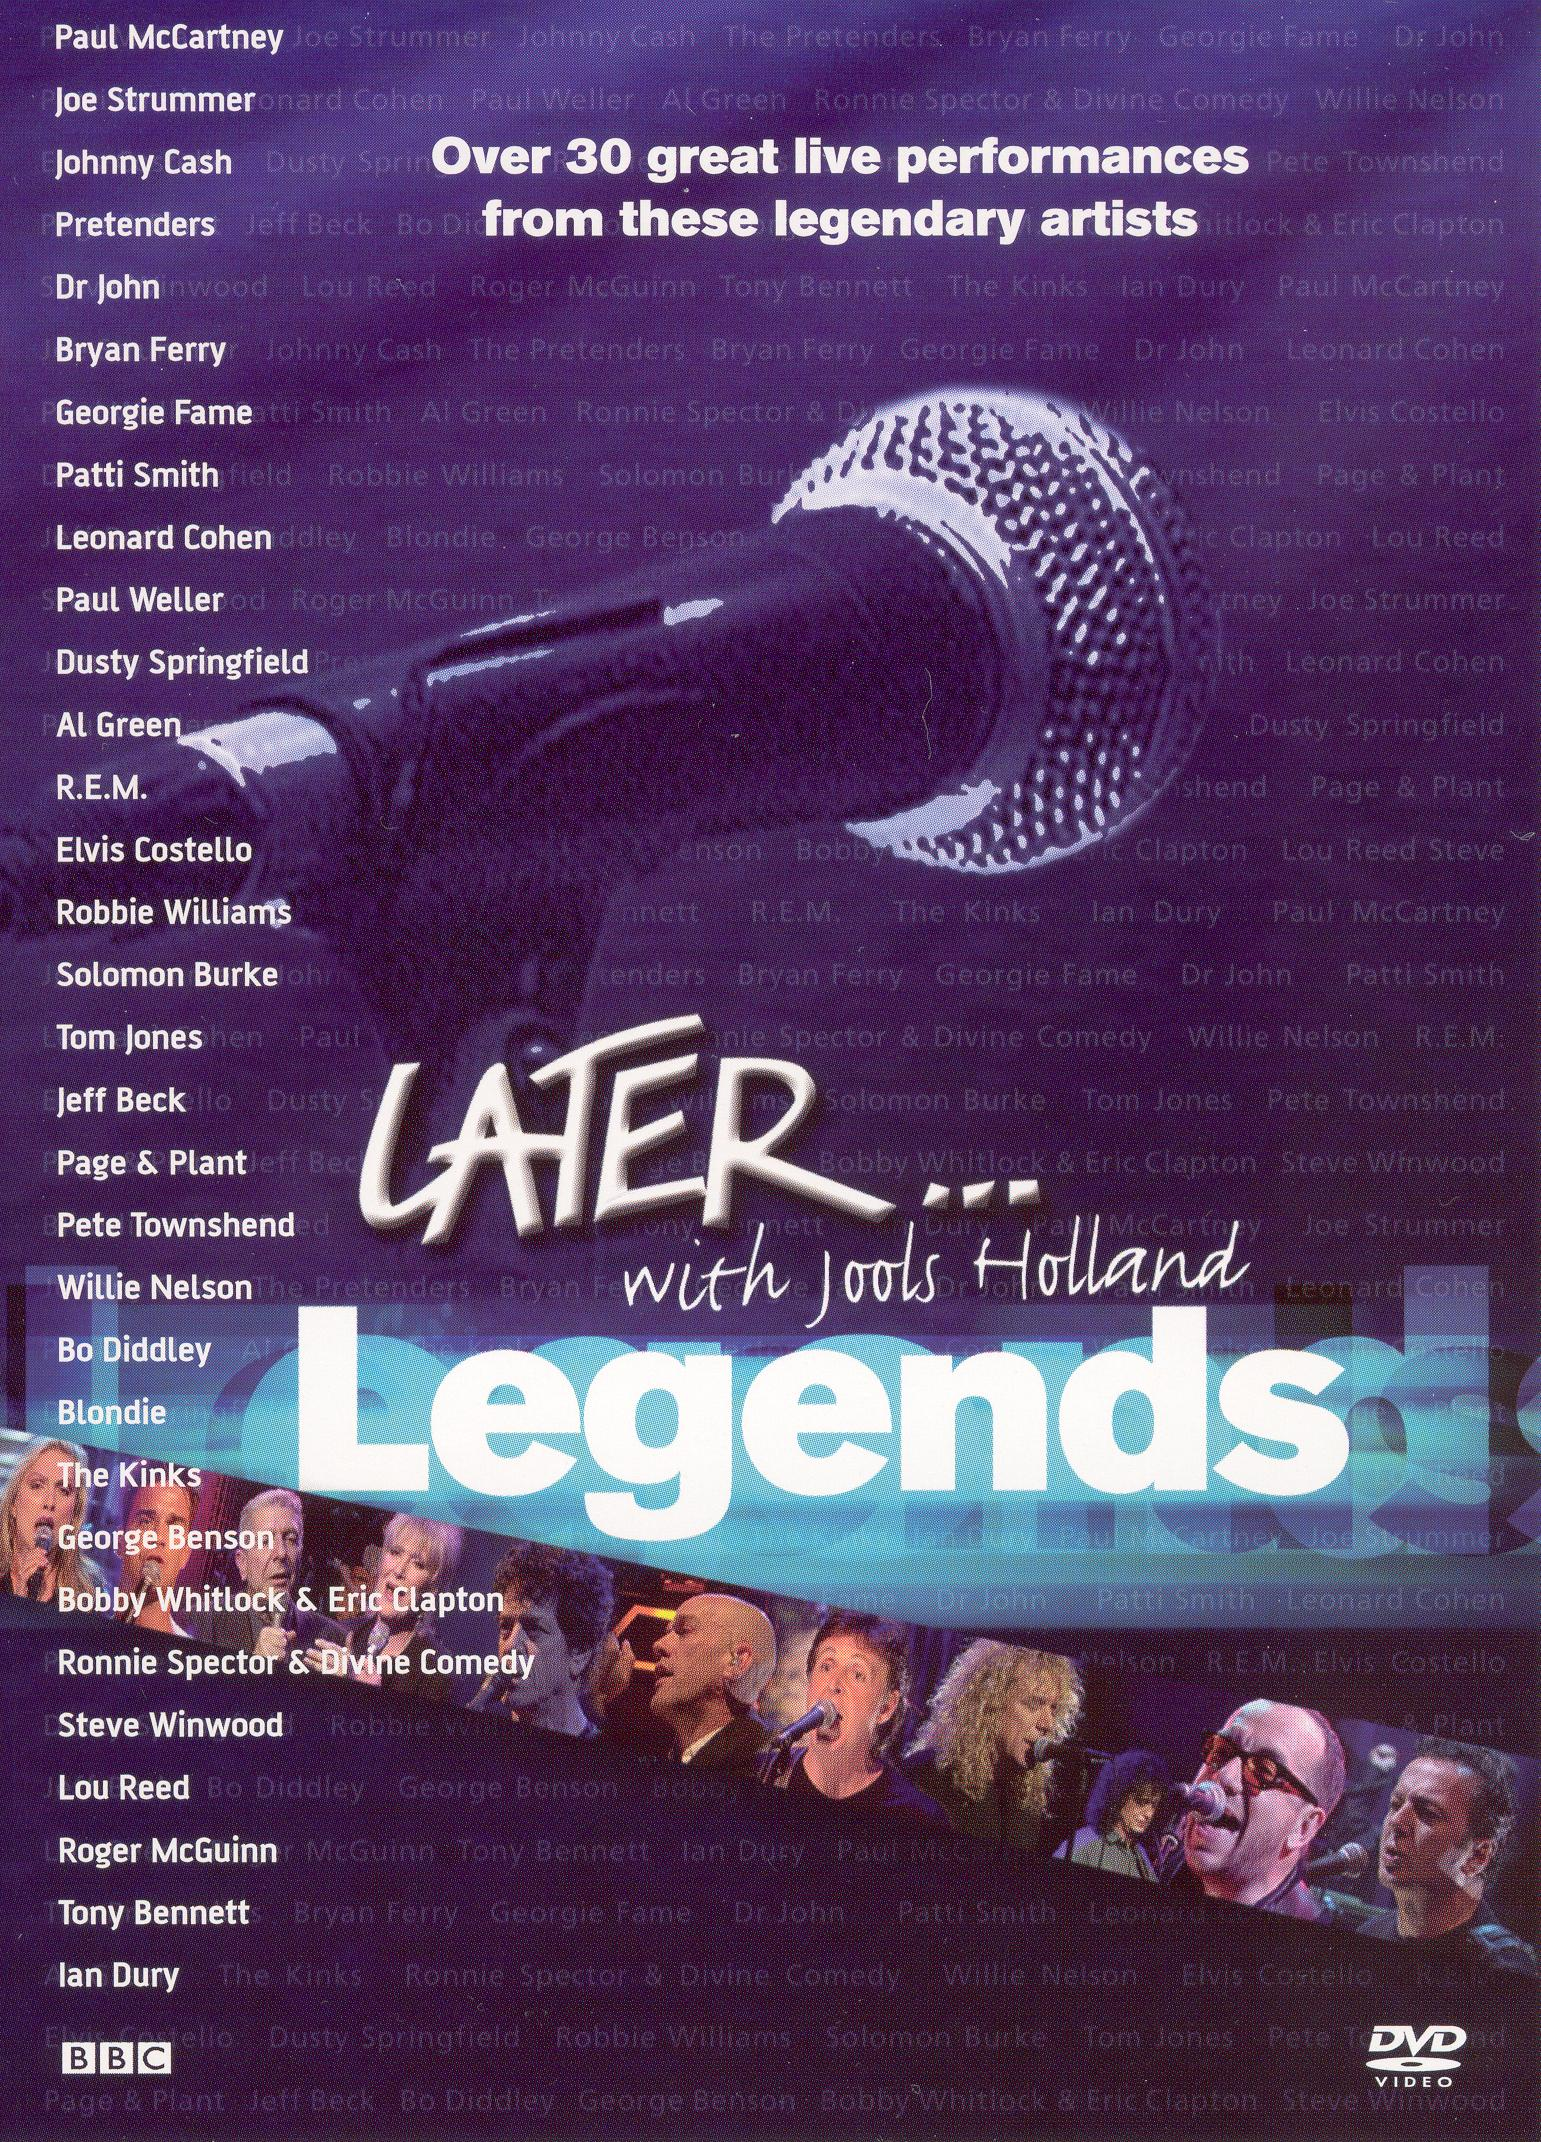 Later... With Jools Holland: Legends